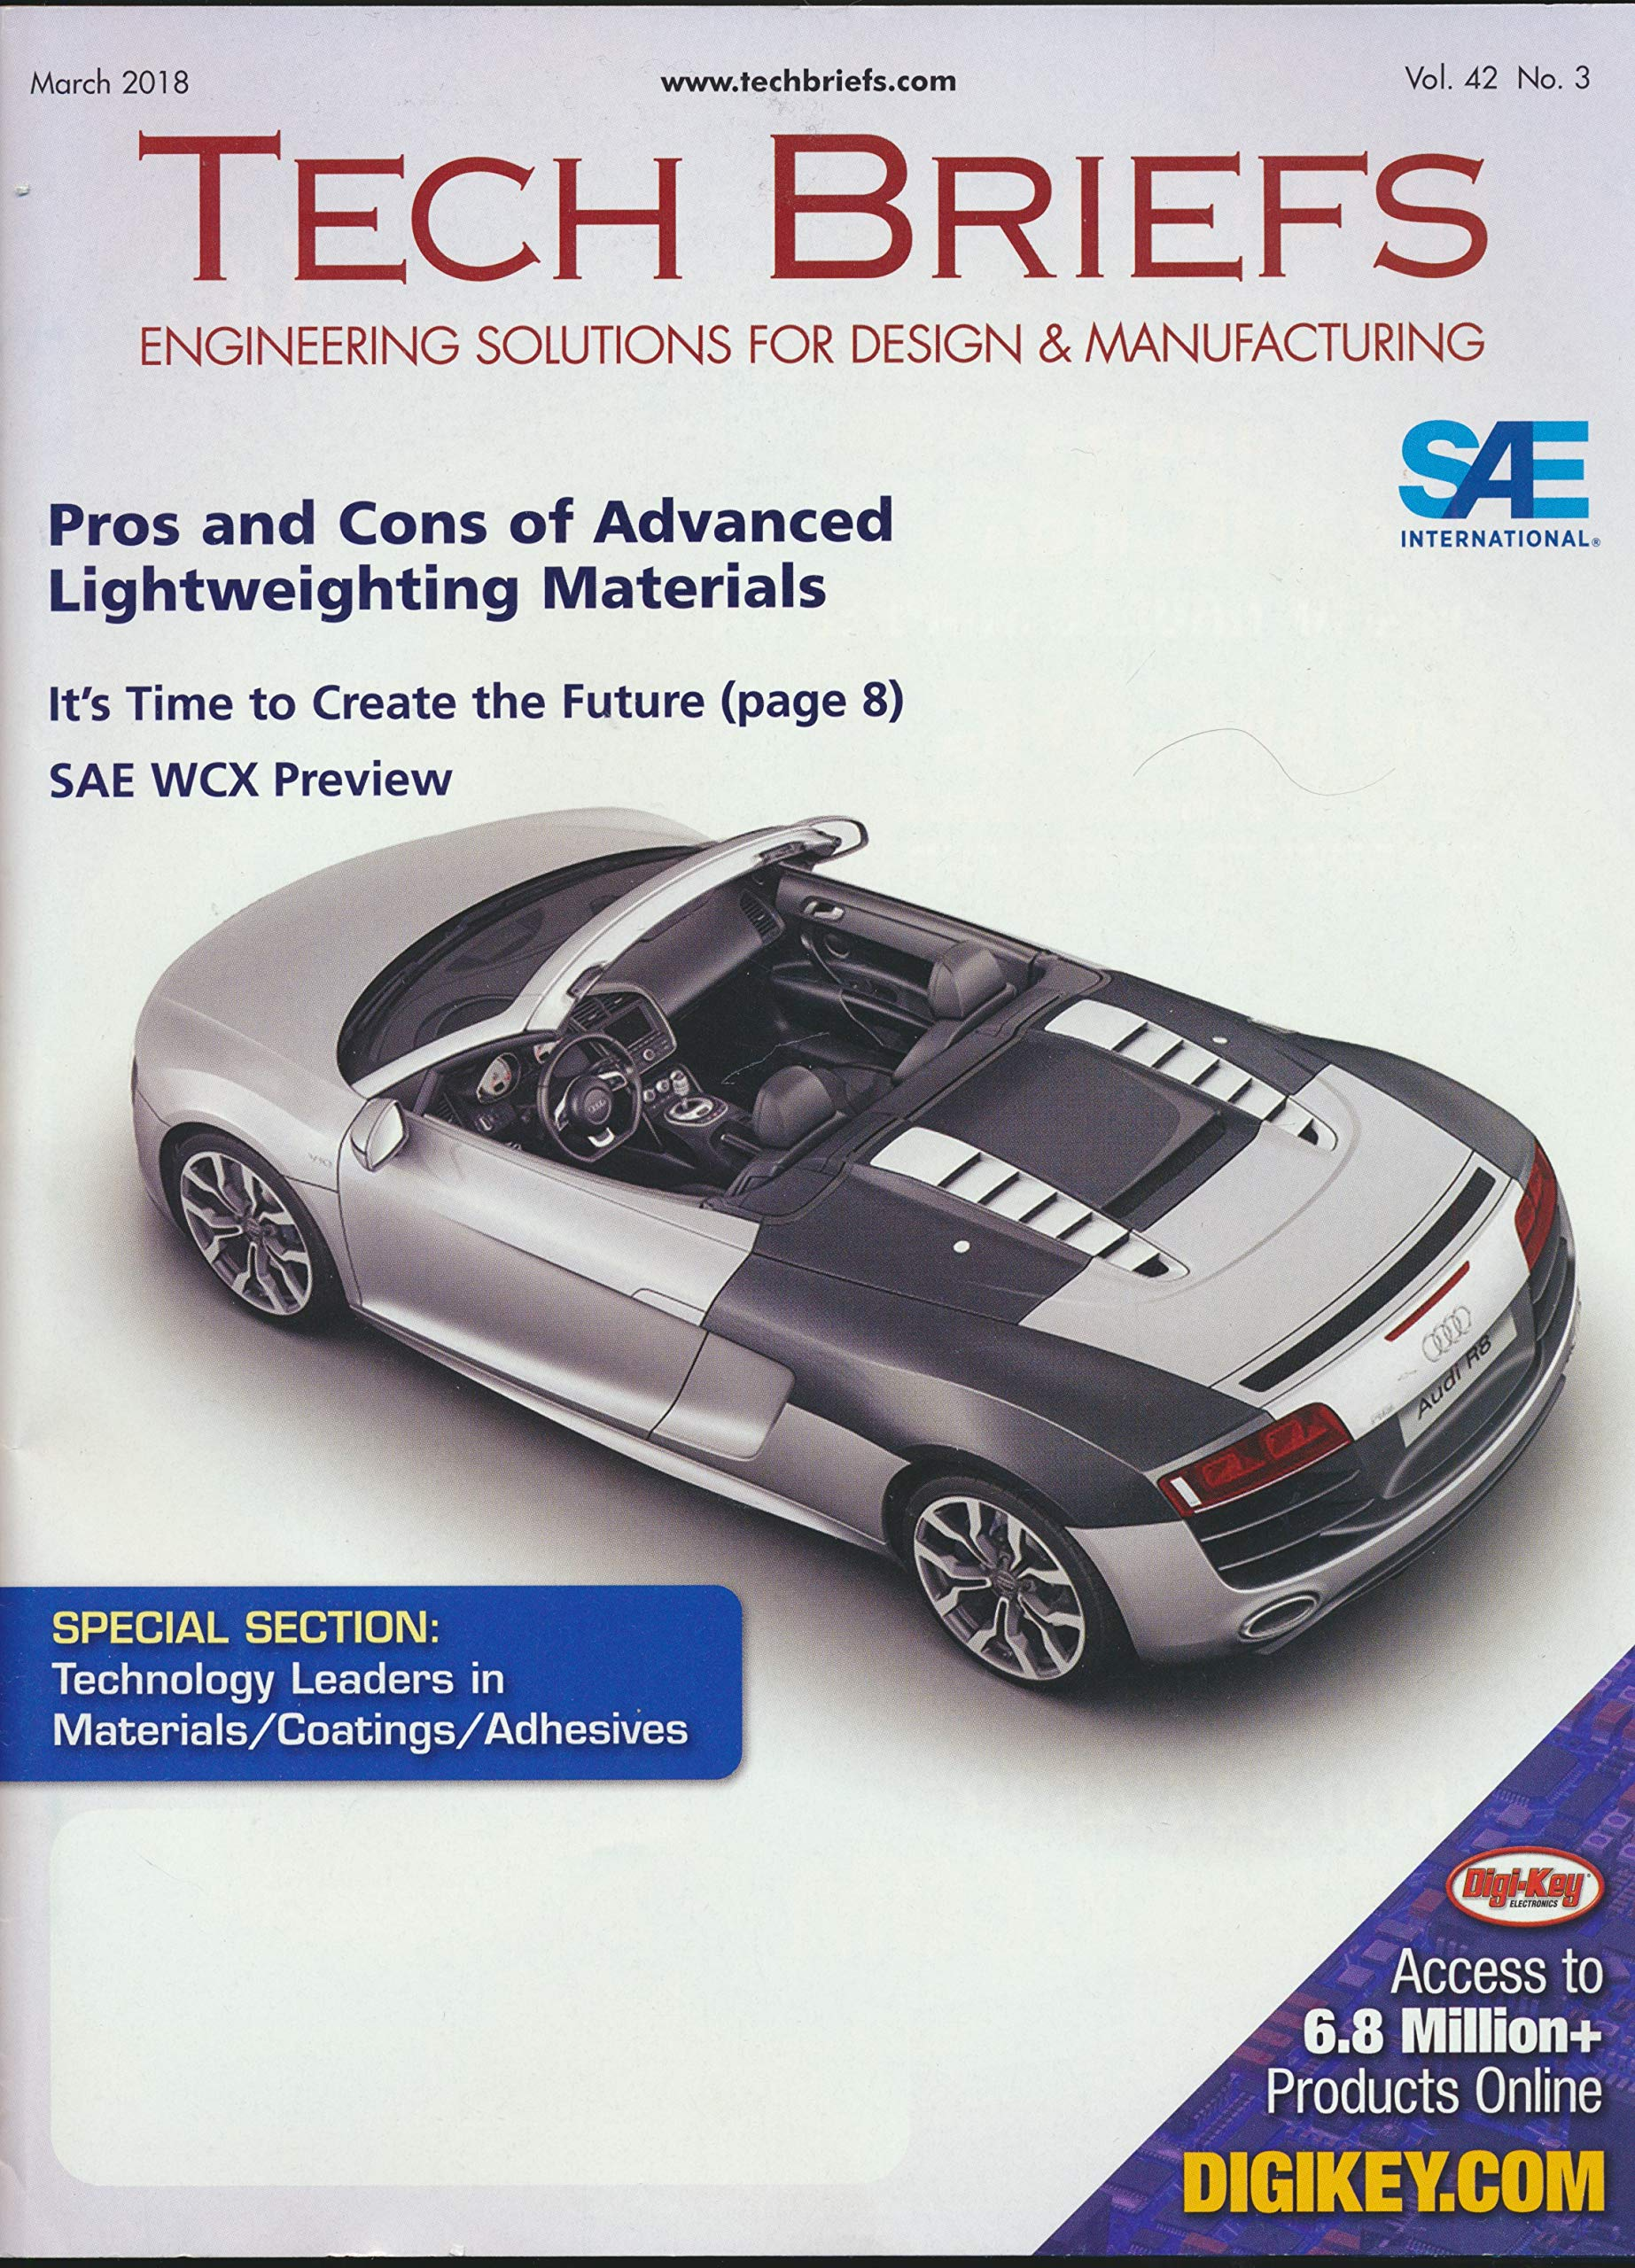 Tech Briefs Engineering Solutions For Design And Manufacturing The Pros And Cons Of Advanced Lightweighting Materials Sae Wcx Preview Structural Adhesives Gallium Infused Liquid Composits Sma Art Rice University John H Glenn Research